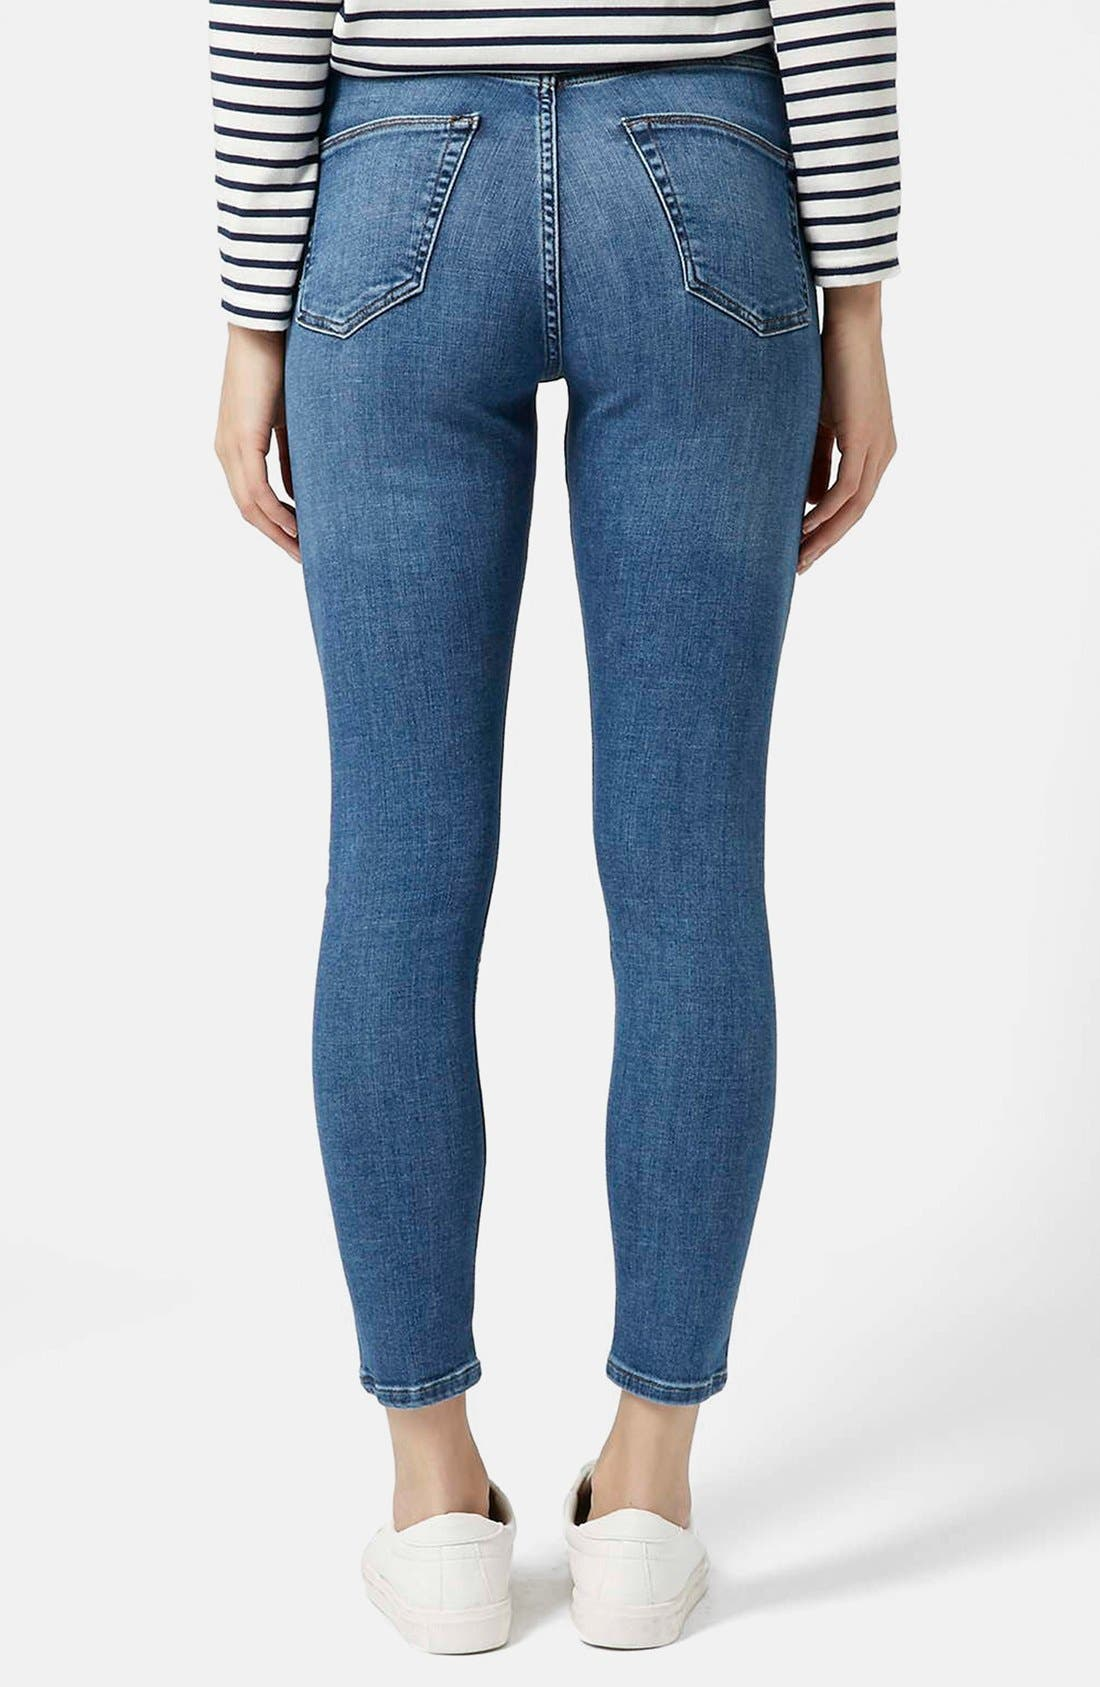 Alternate Image 2  - Topshop Moto 'Cain' High Rise Ankle Jeans (Blue) (Short)